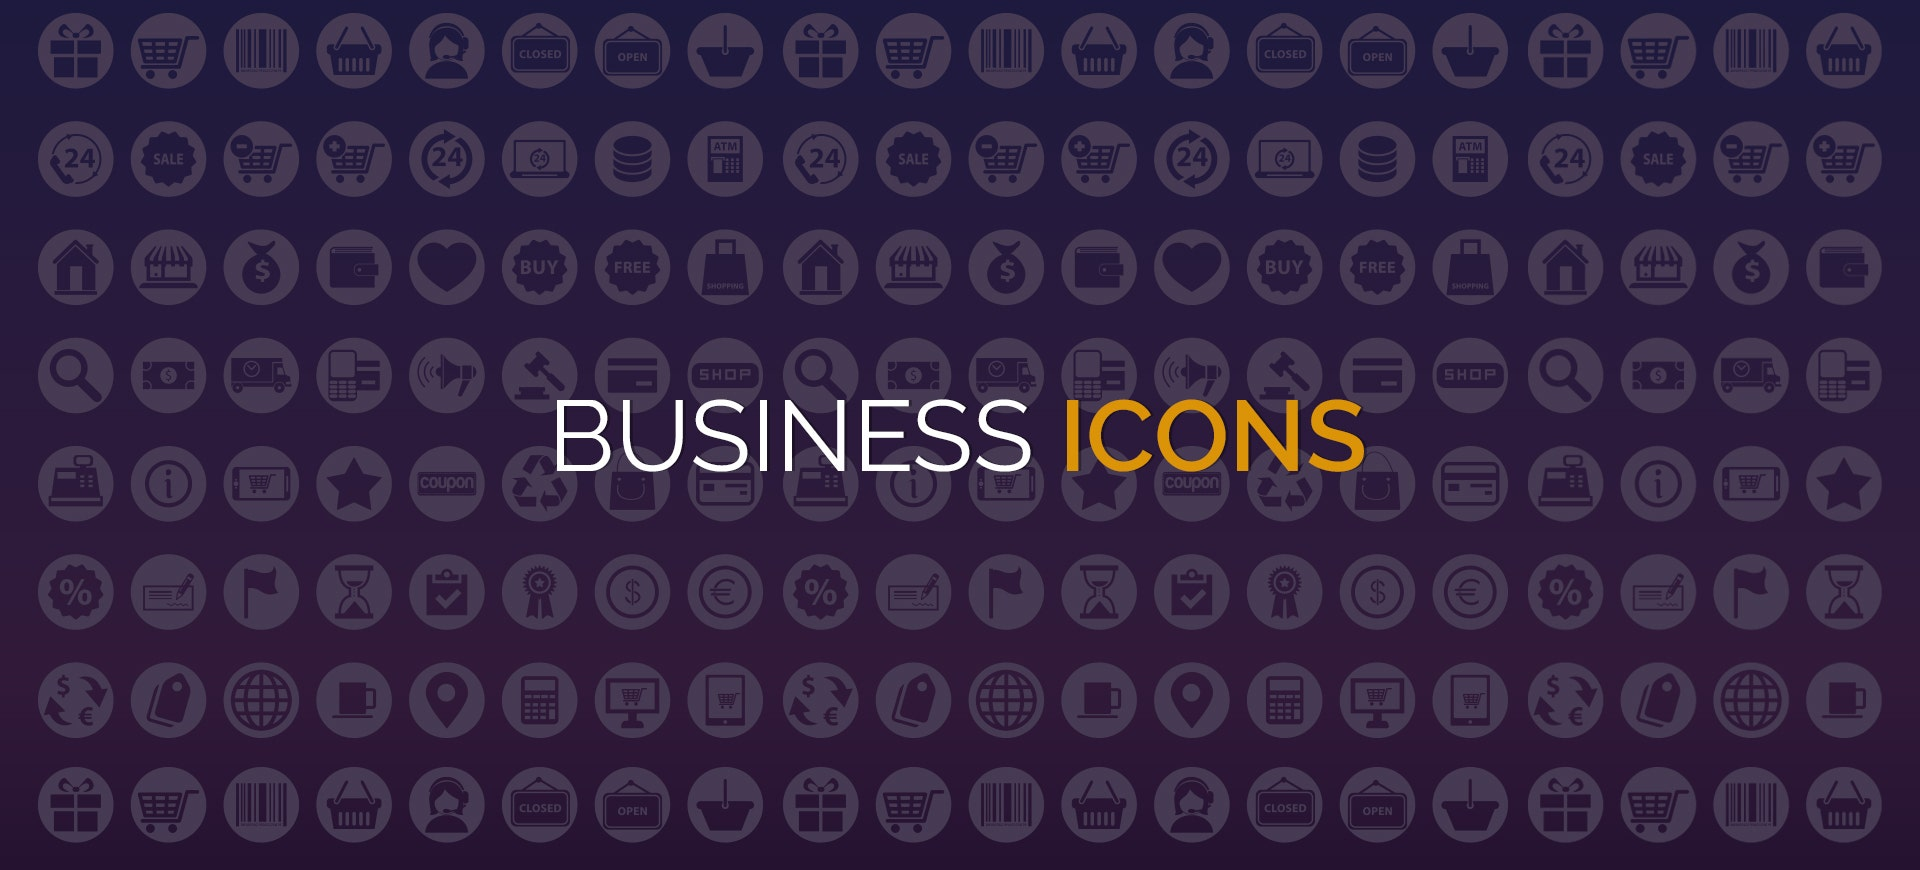 vectorbusinessicons